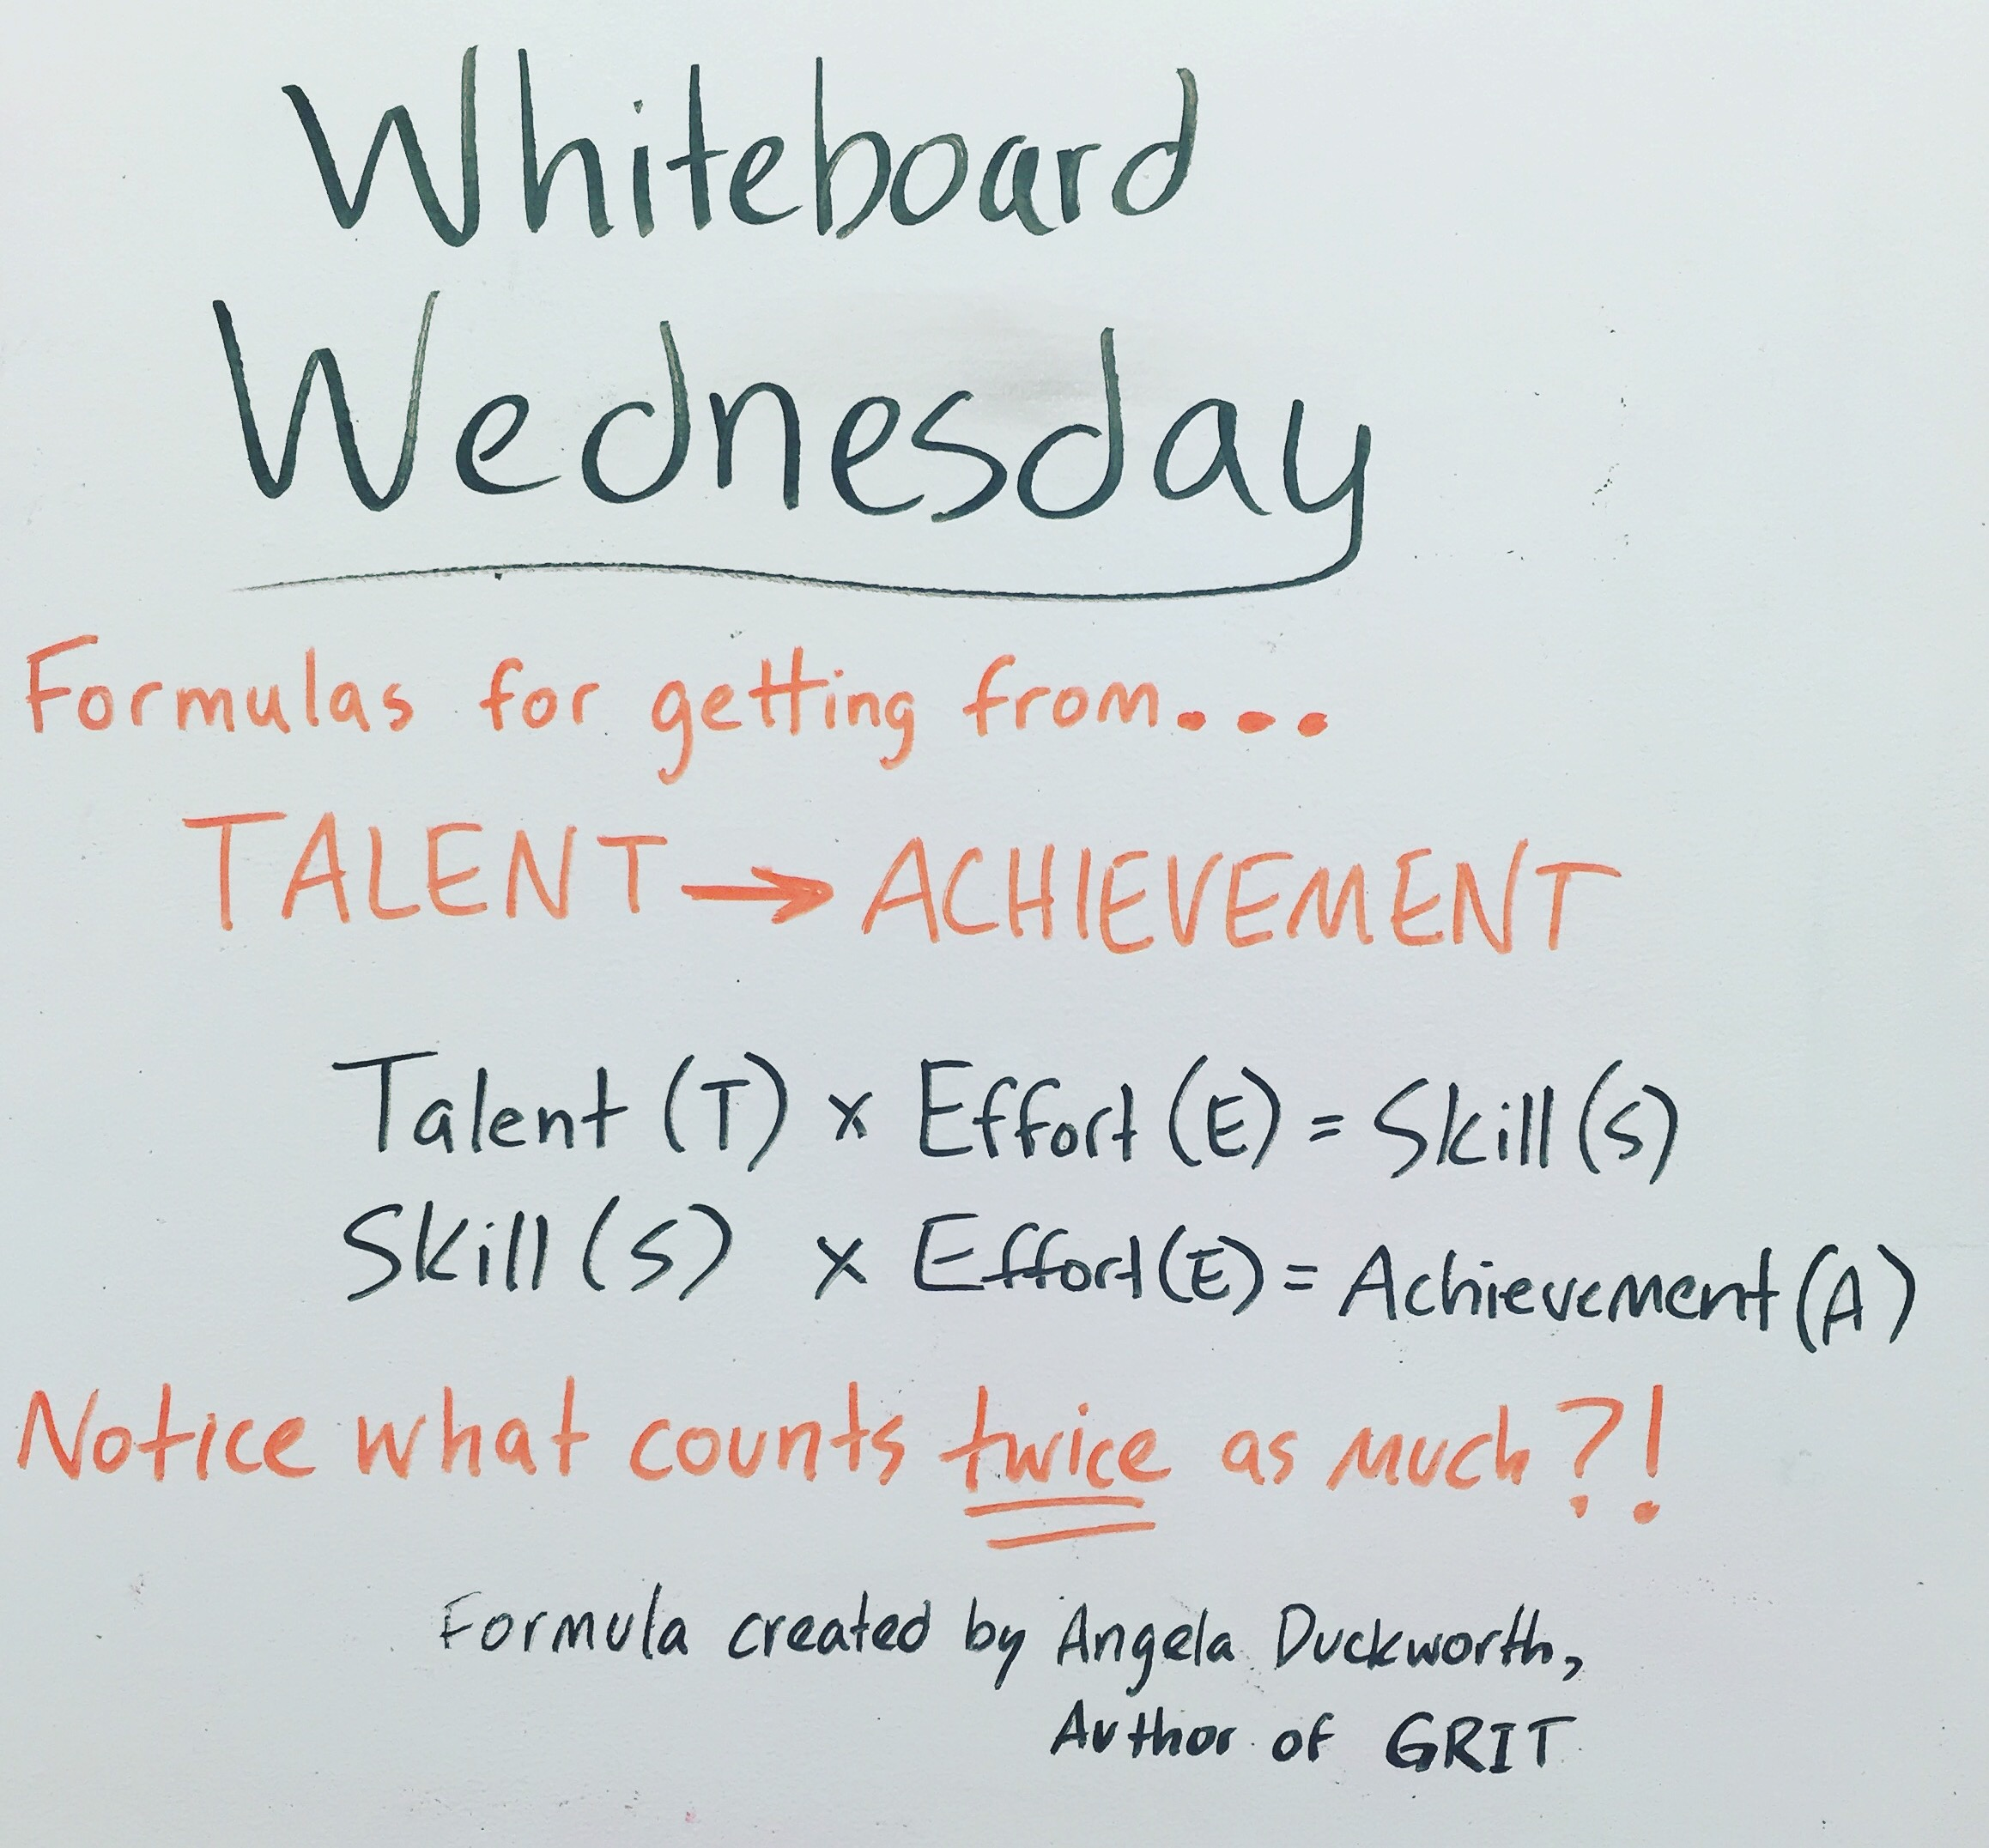 Image result for whiteboard wednesday